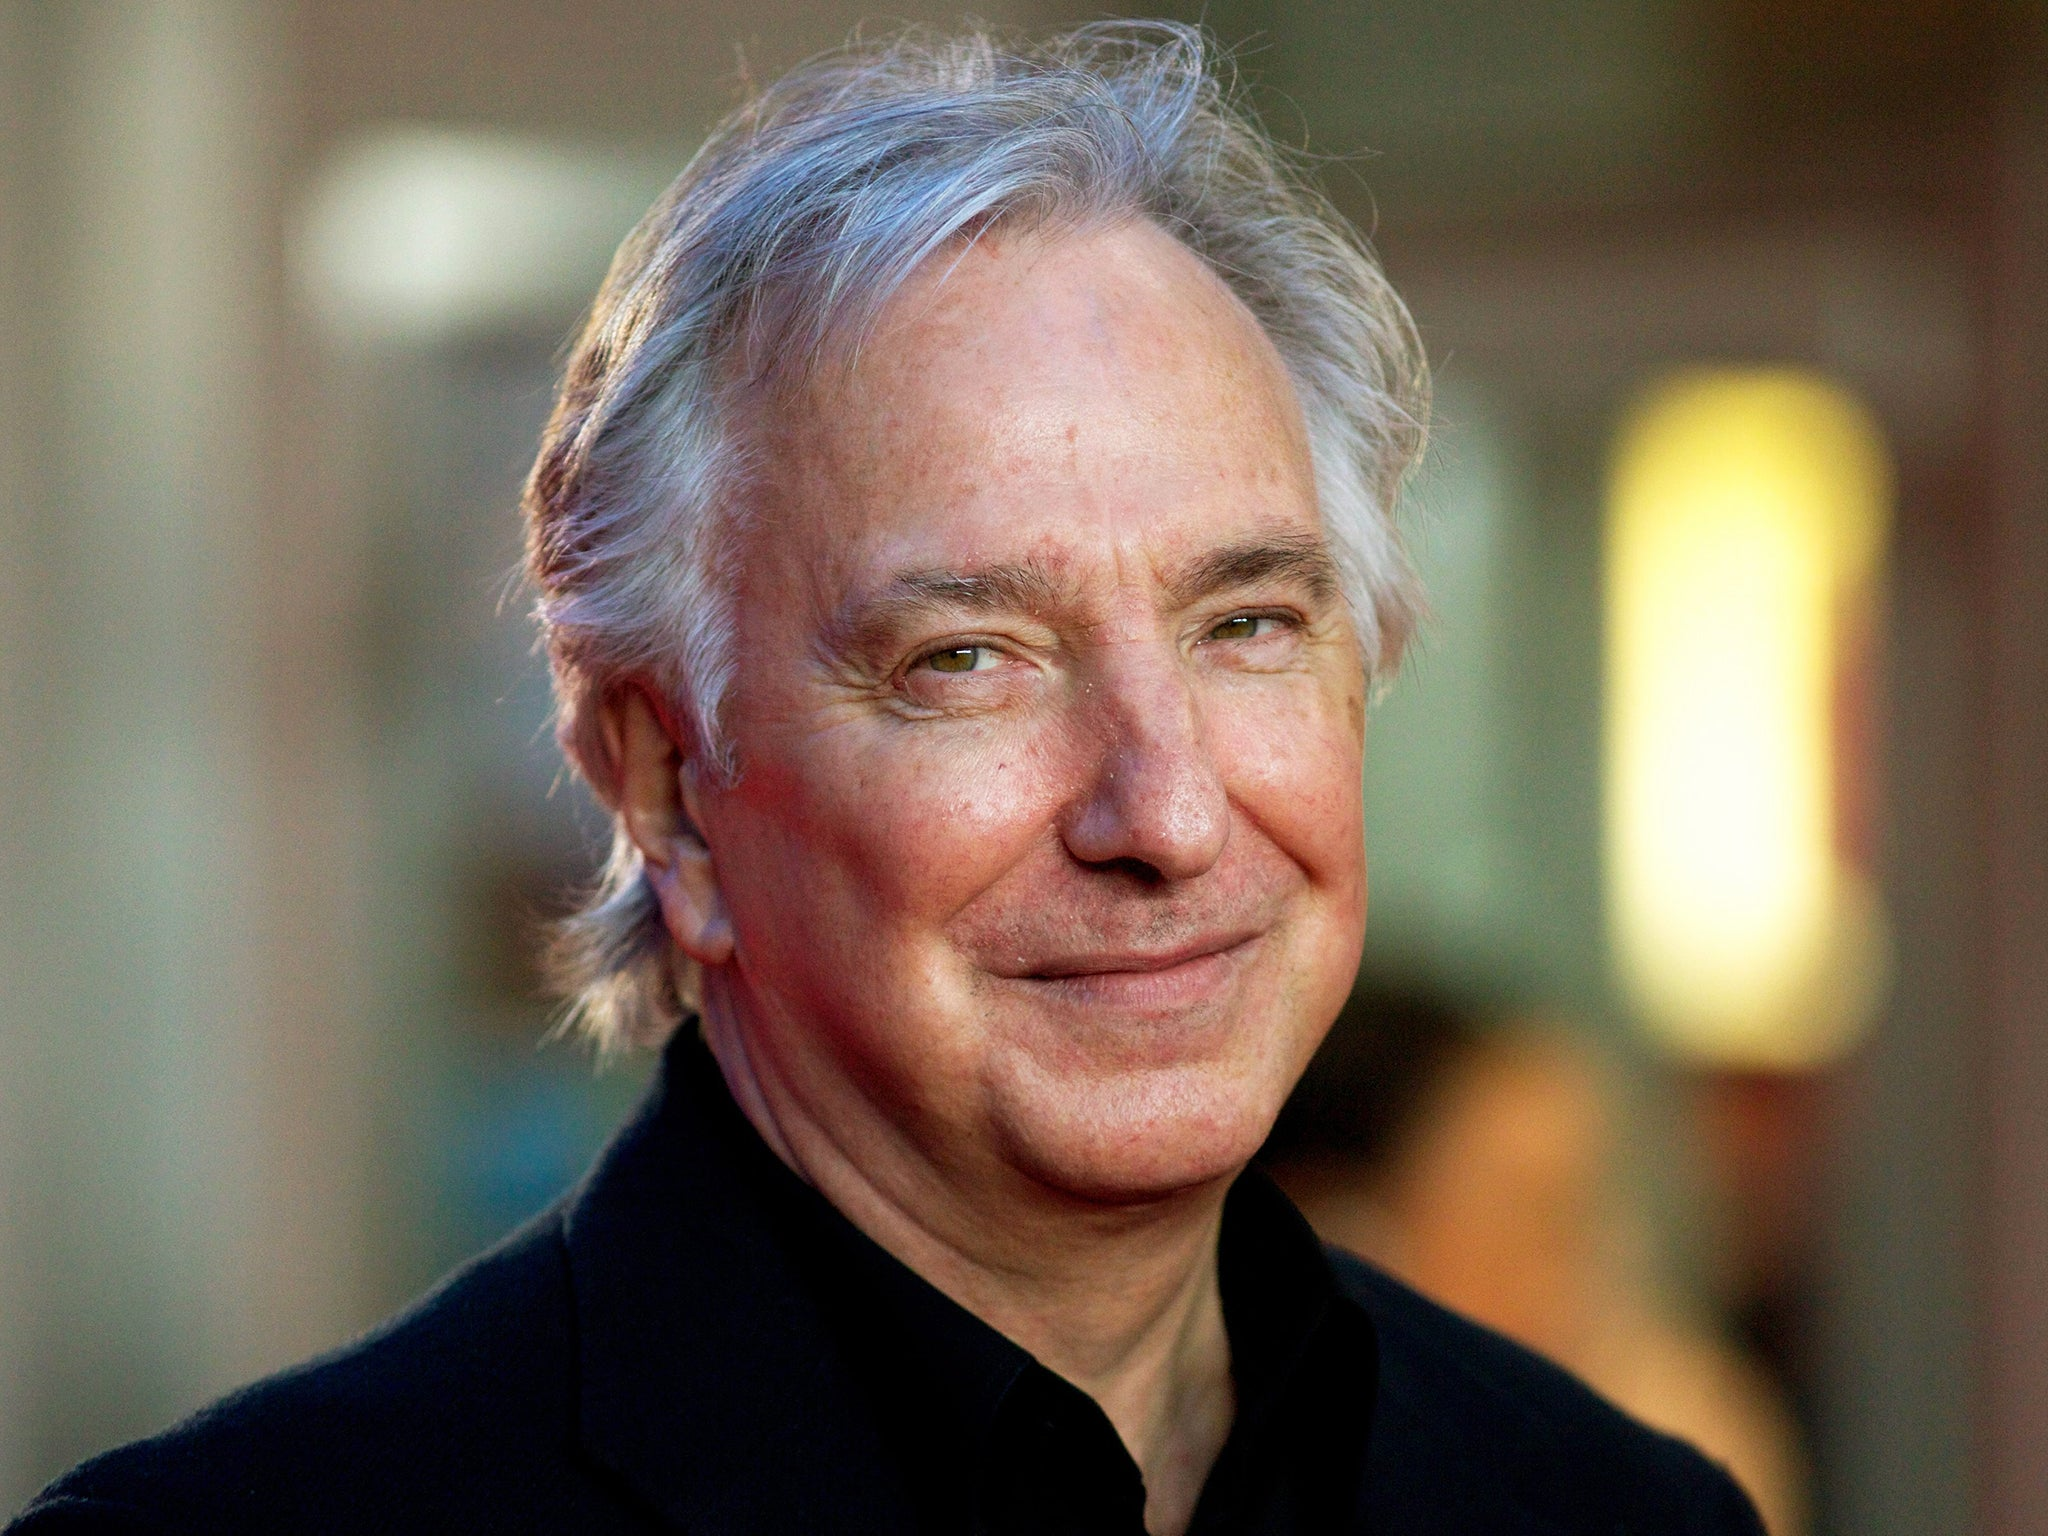 Alan Rickman: 6 of the actor's roles you may not know about